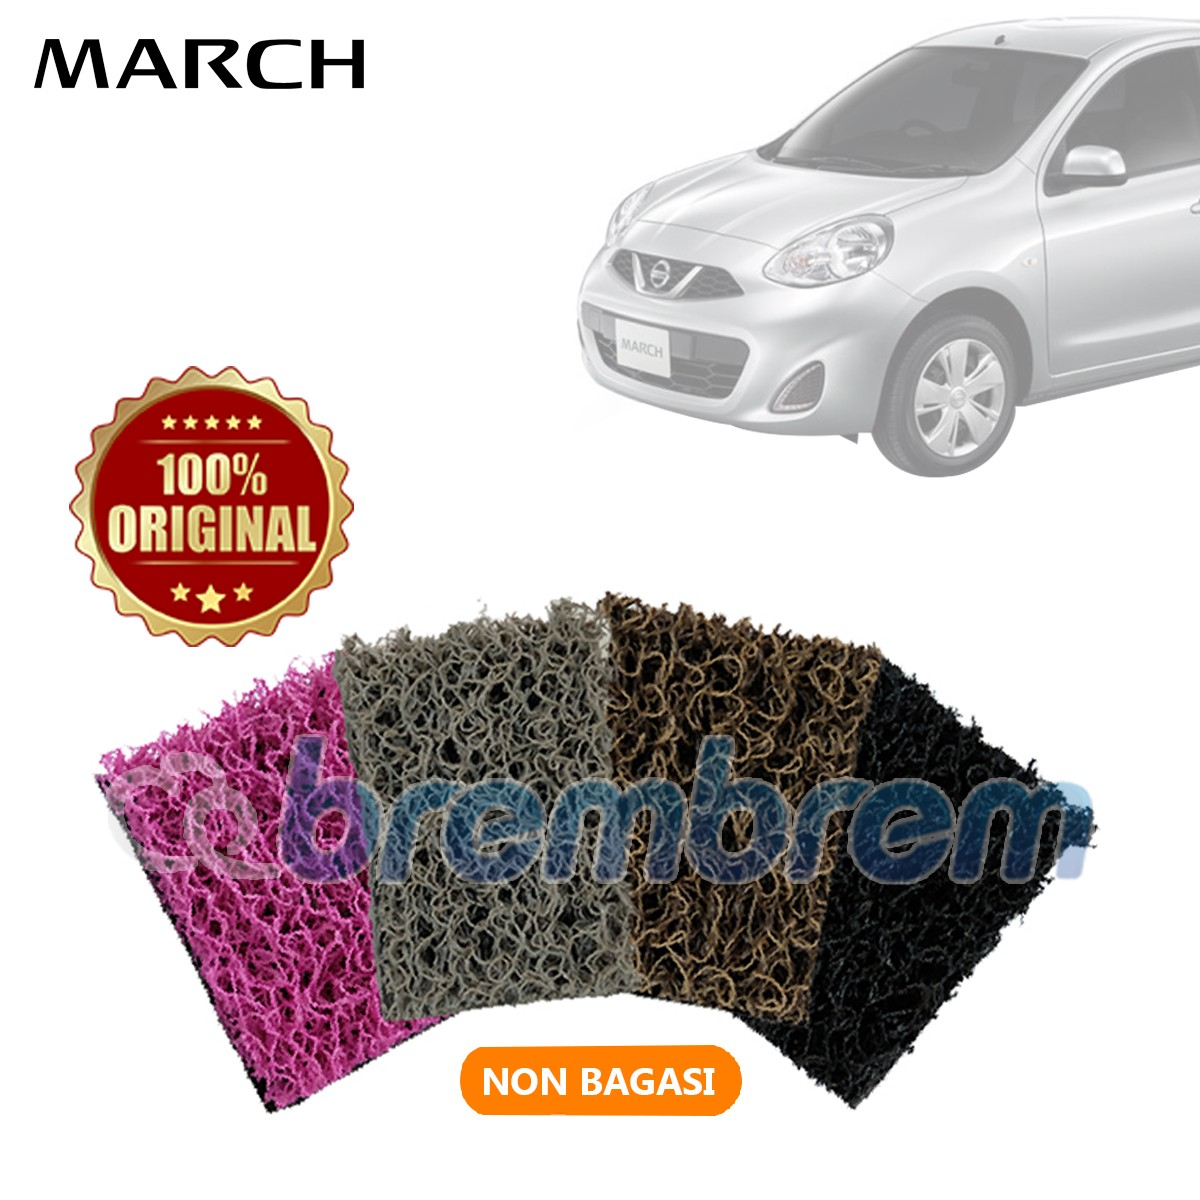 KARPET COMFORT DELUXE NON BAGASI NISSAN MARCH